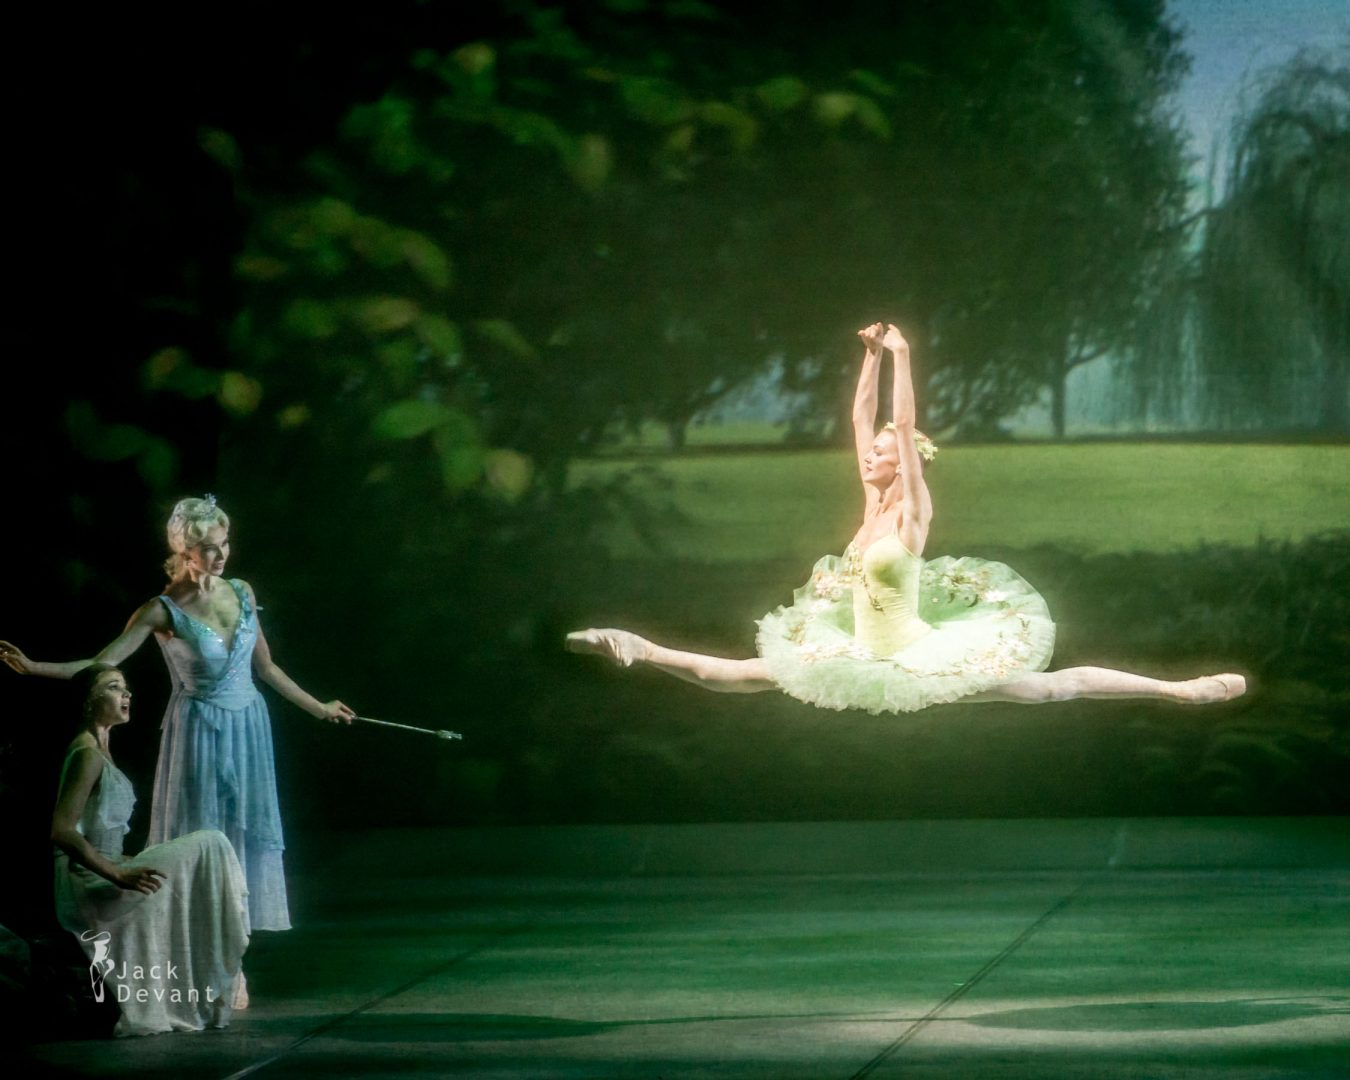 Svetlana Bednenko (Светлана Бедненко) as Fairy Andrea Laššáková as Summer Fairy